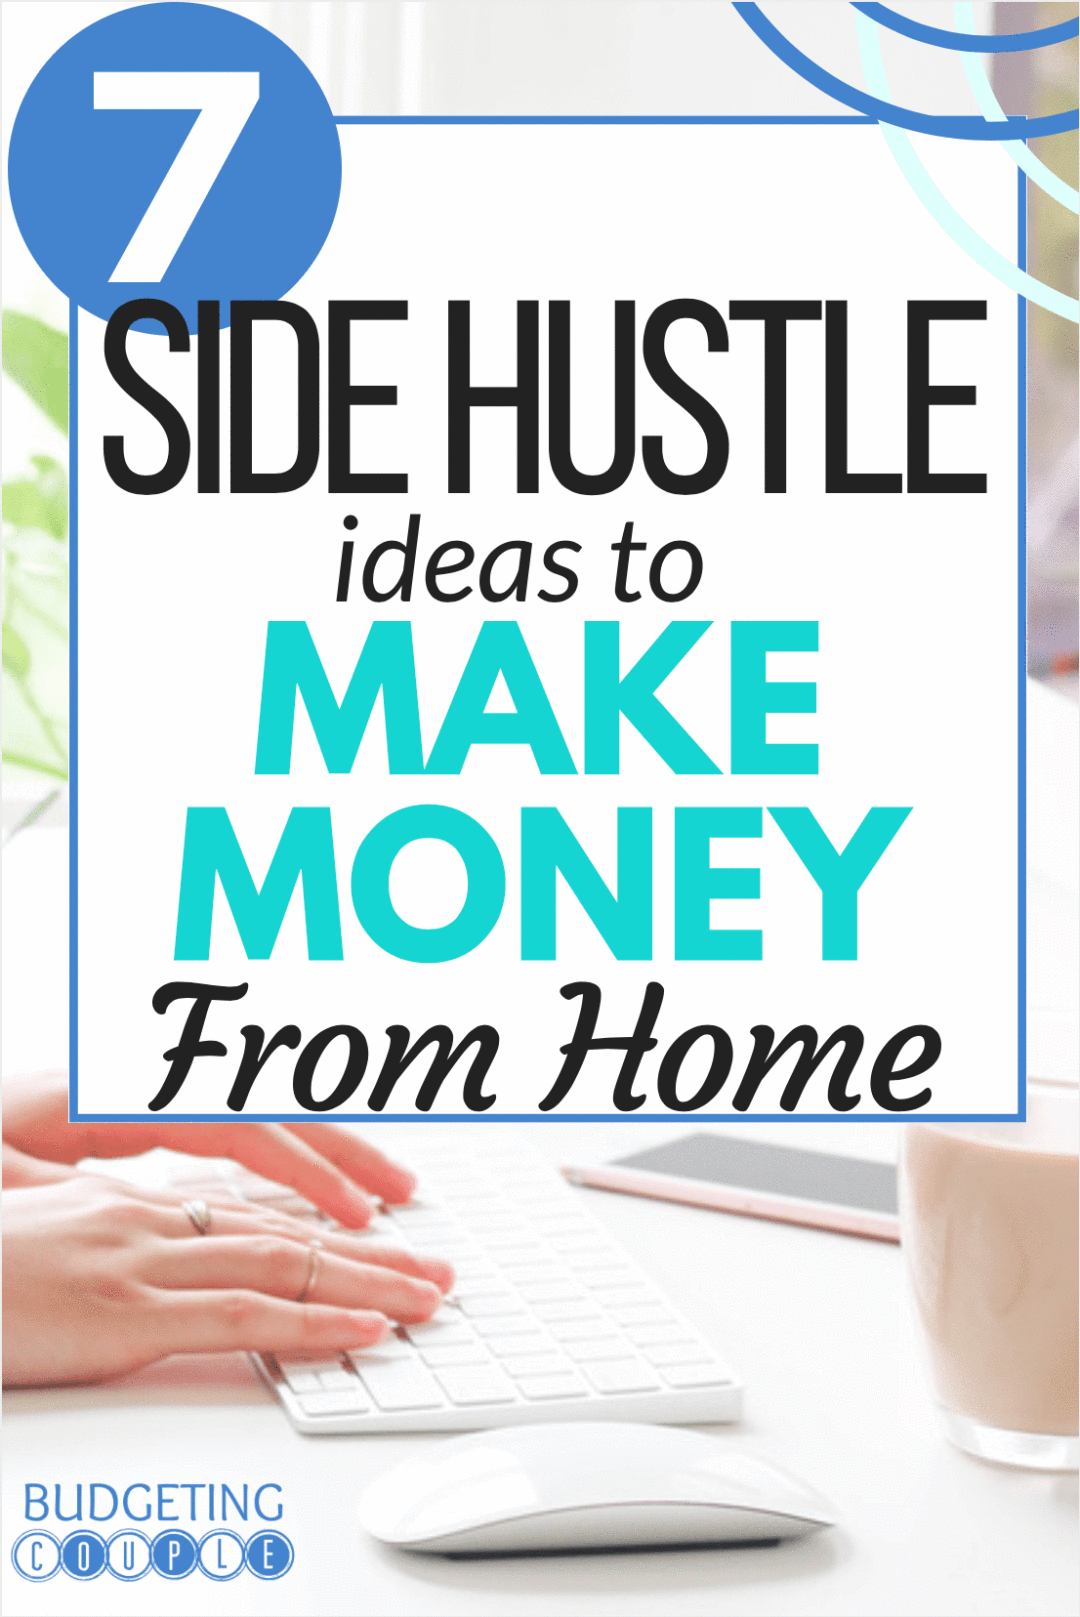 Make Money From Home With These 7 Side Hustle Ideas | Side Hustles ...